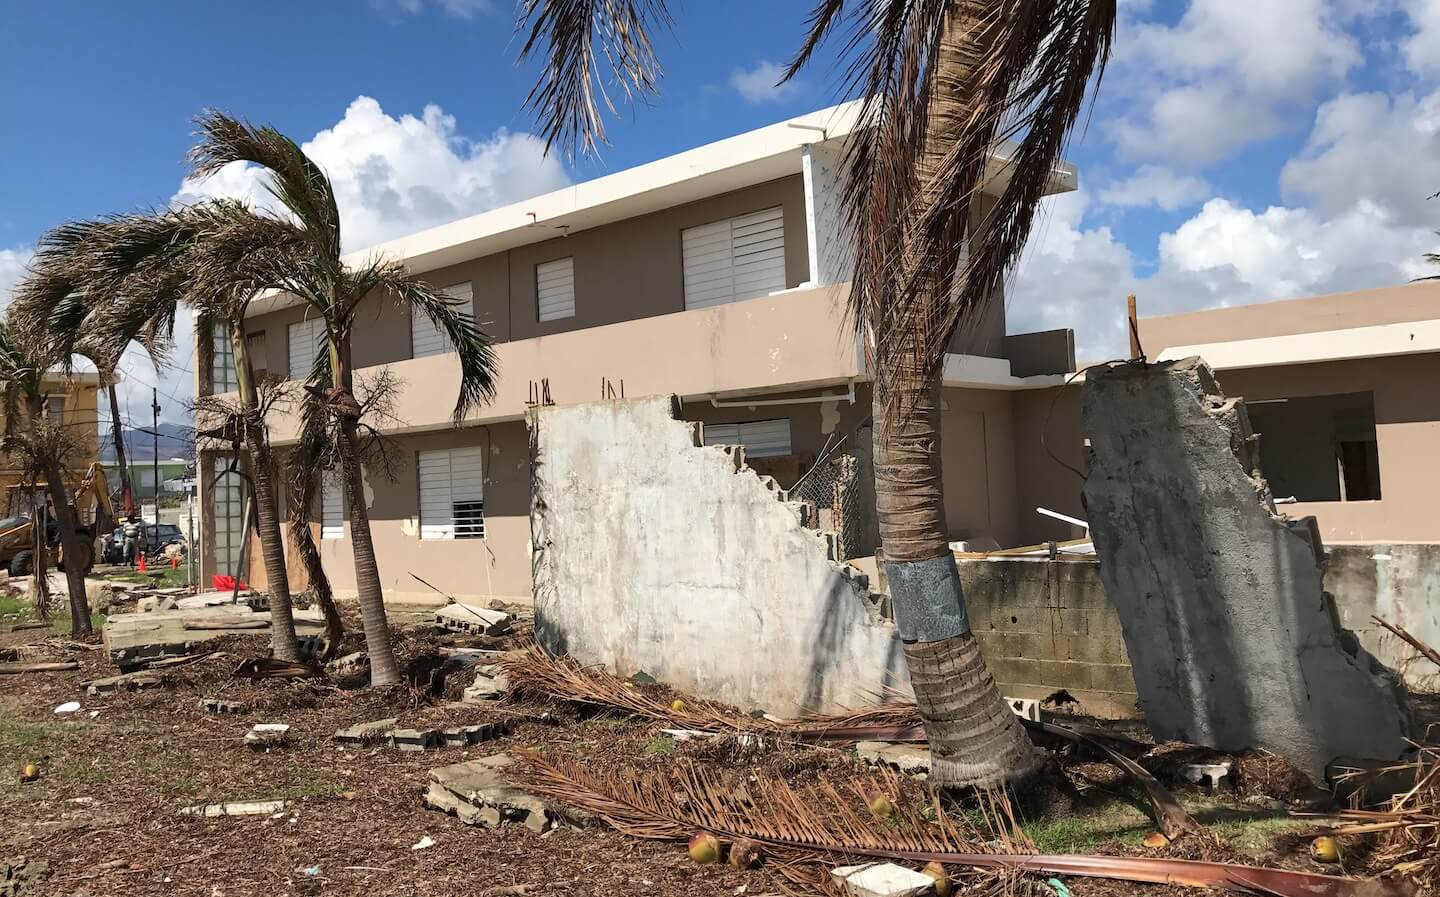 Damage assessment data collection in Puerto Rico (Image: NSF StEER team)